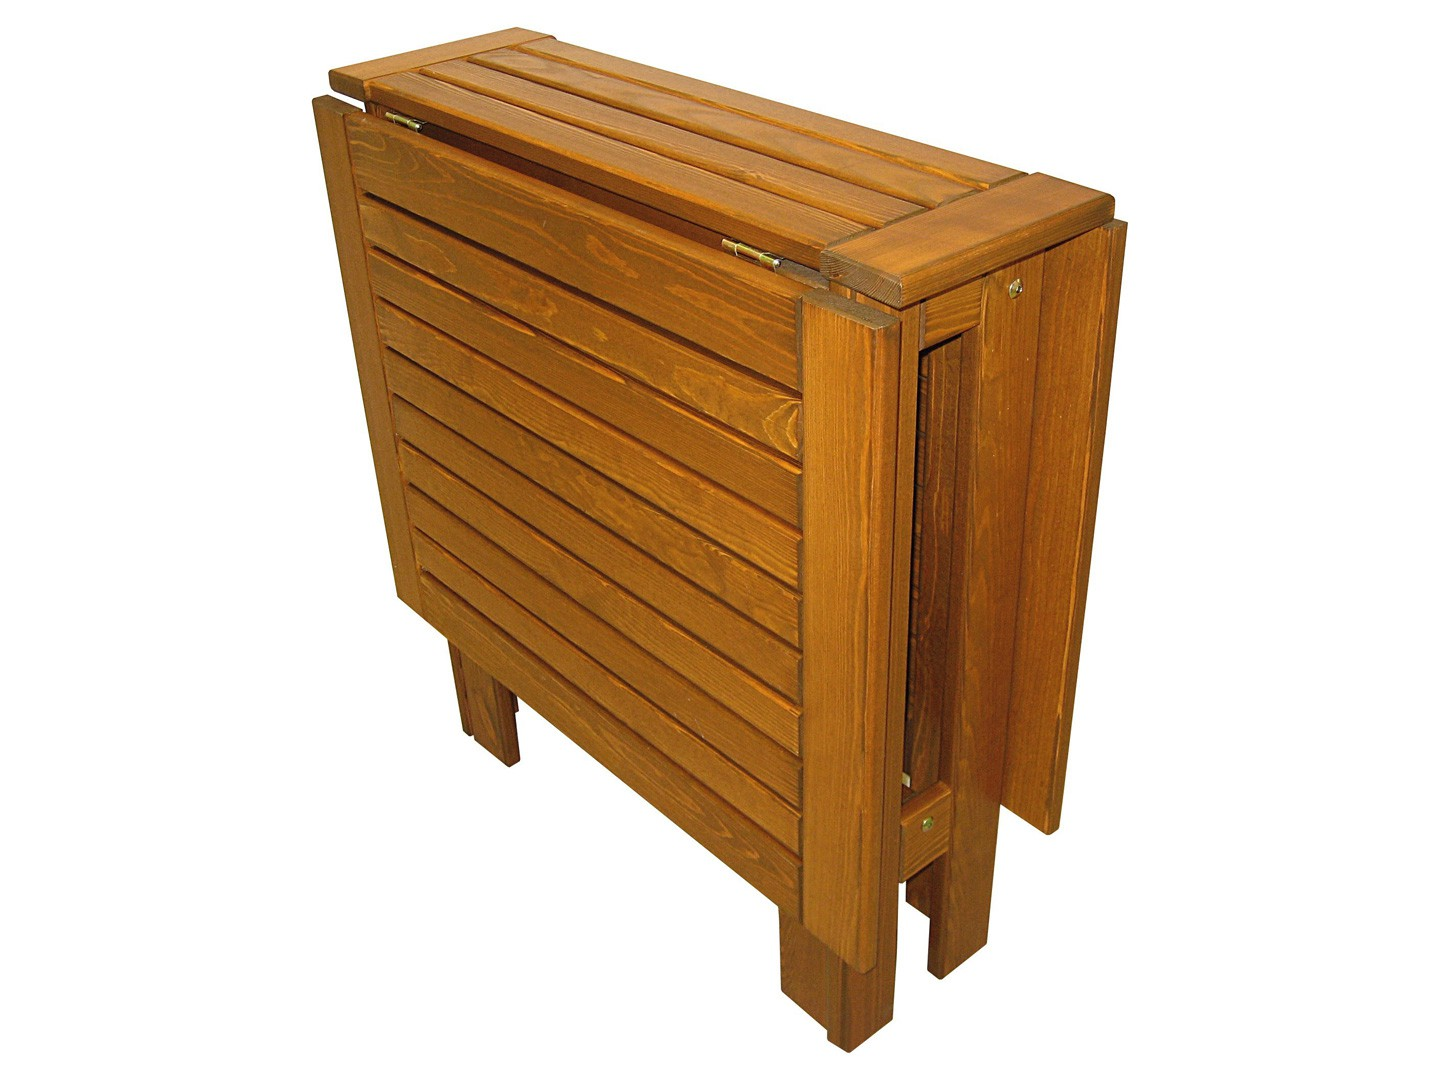 Table de jardin en bois pliante maison fran ois fabie - Table de cuisine pliante but ...